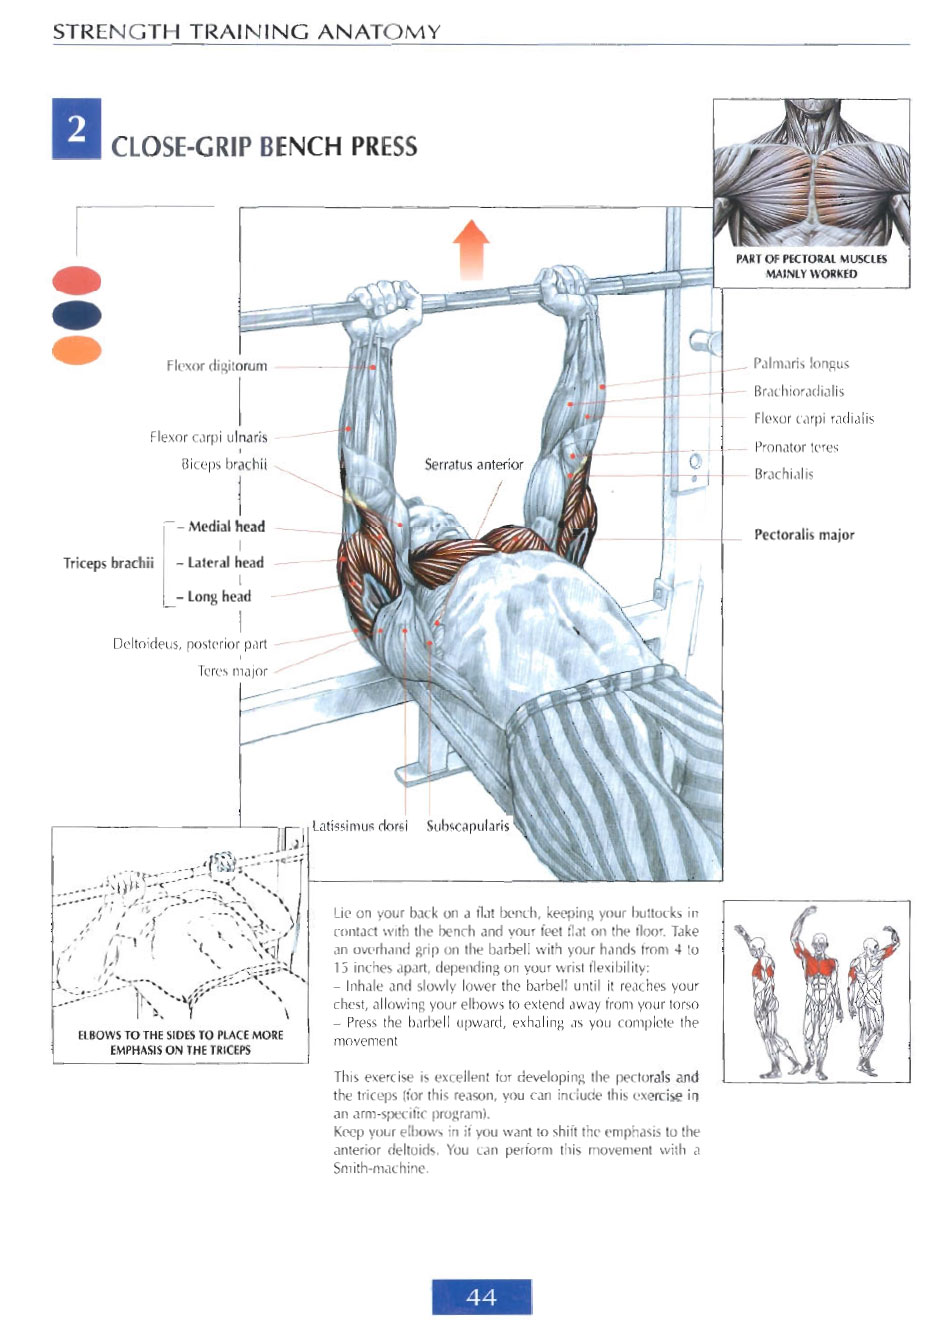 Strength Training Anatomy Review - Sports Science .co